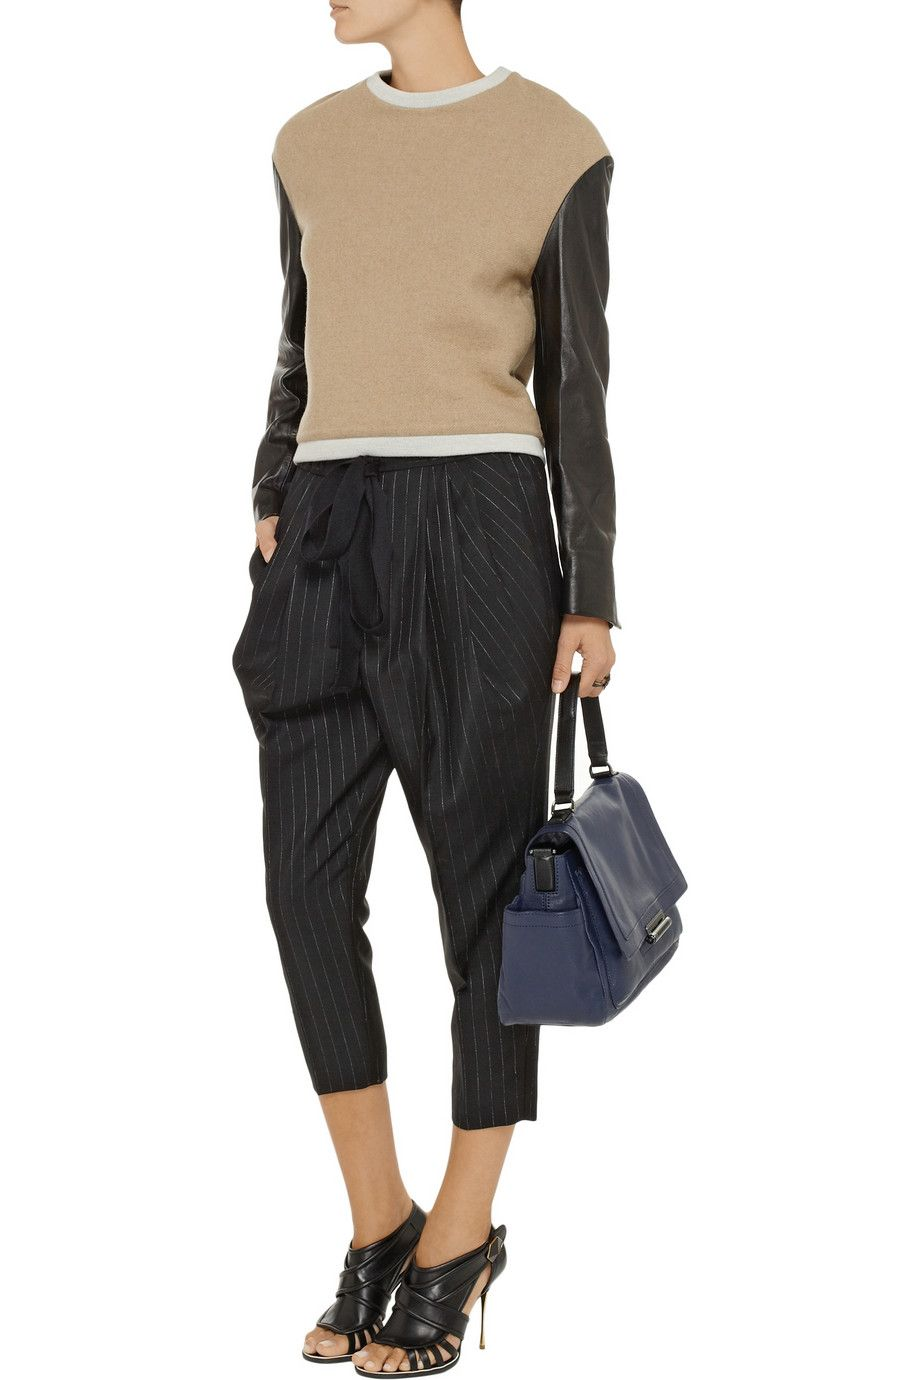 Love this look - 3.1 Phillip Lim Leather-sleeved wool-blend sweater